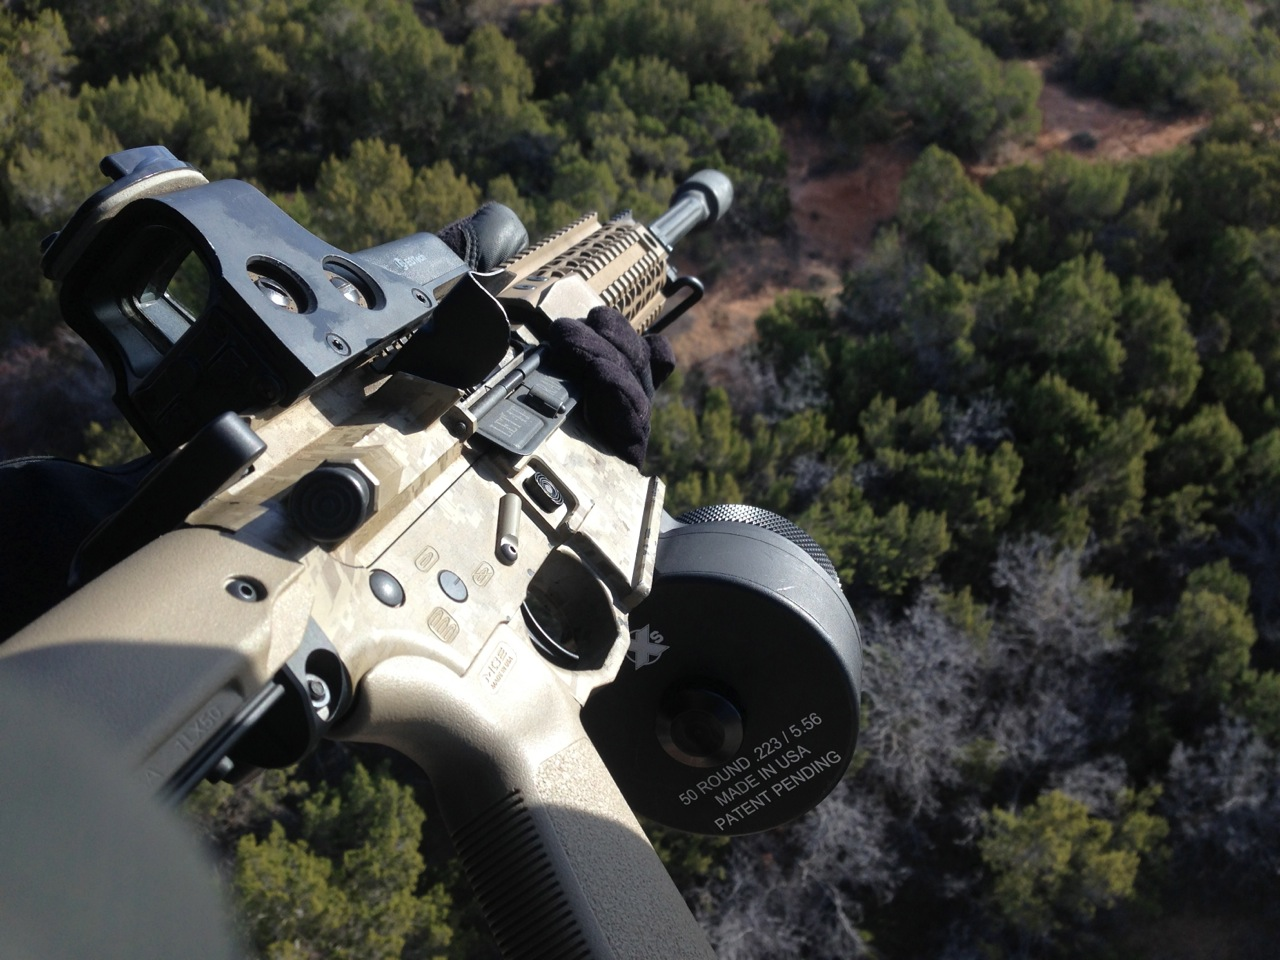 heli hog hunting with Helicopter Hog Hunt Slow Mo Kill Shots Video on 8 Haunting Trail Cam Photos That Will Leave You Spooked together with Pork Choppers Set Sights On Hogs Wild besides Sportsman Channel Takes Feral Hog Hunt To The Air Each Week With Heli Hunter further Good Quality Speaker Wire For Bi Wiring B W 703 likewise Helicopter Hog Hunting Bucket List.